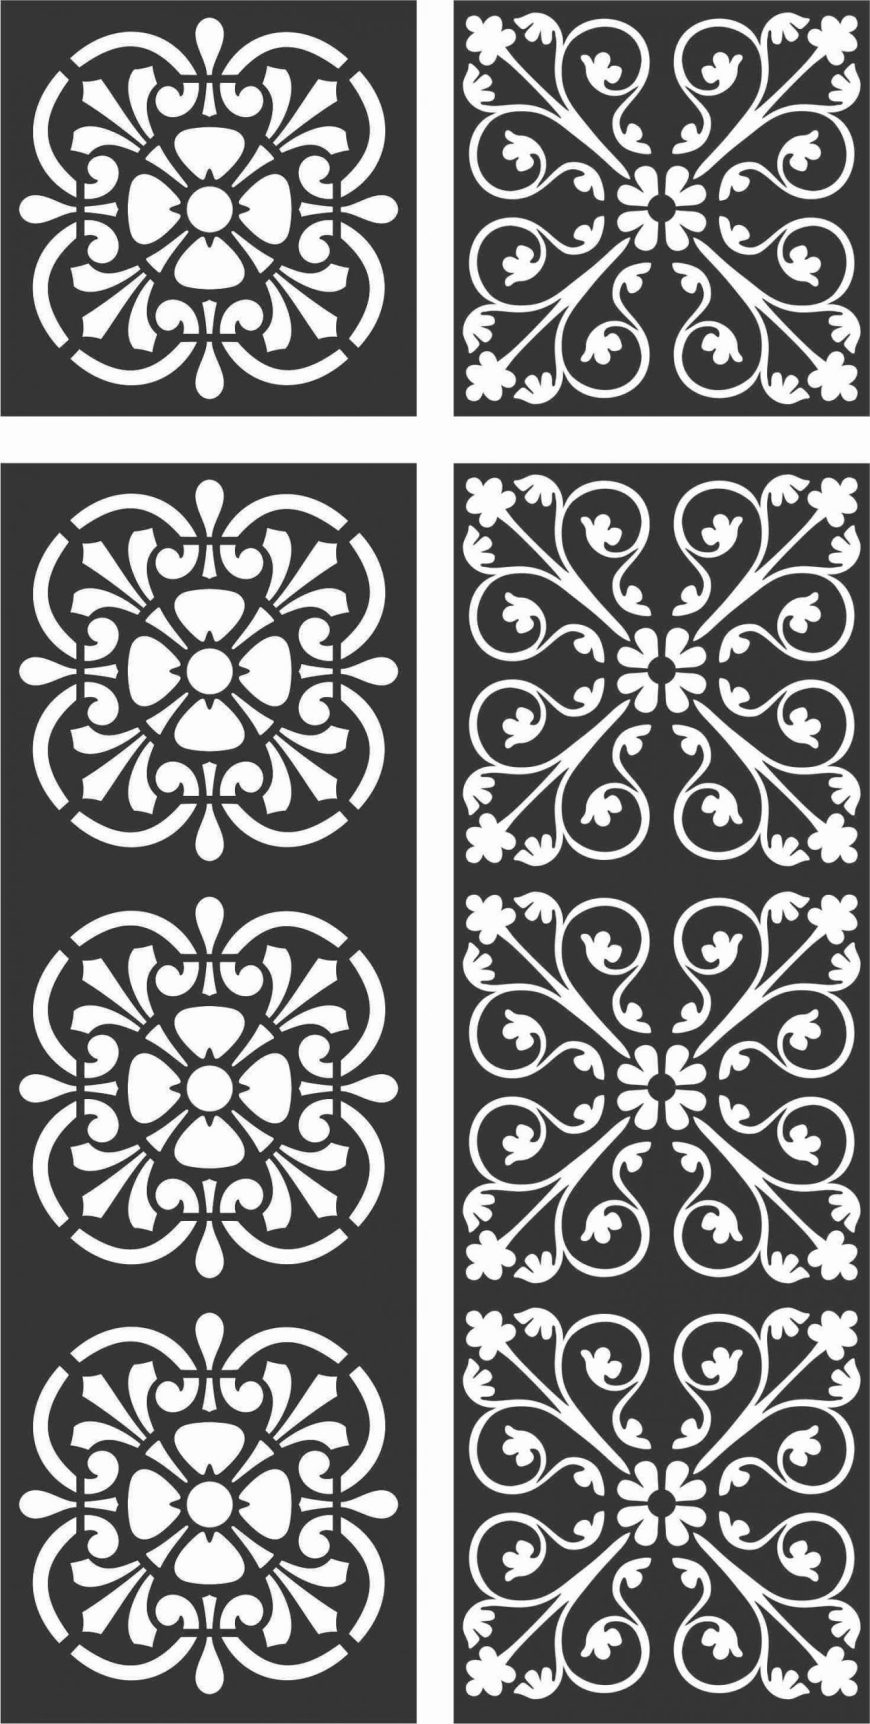 Floral Screen Patterns Design 121 Free DXF File